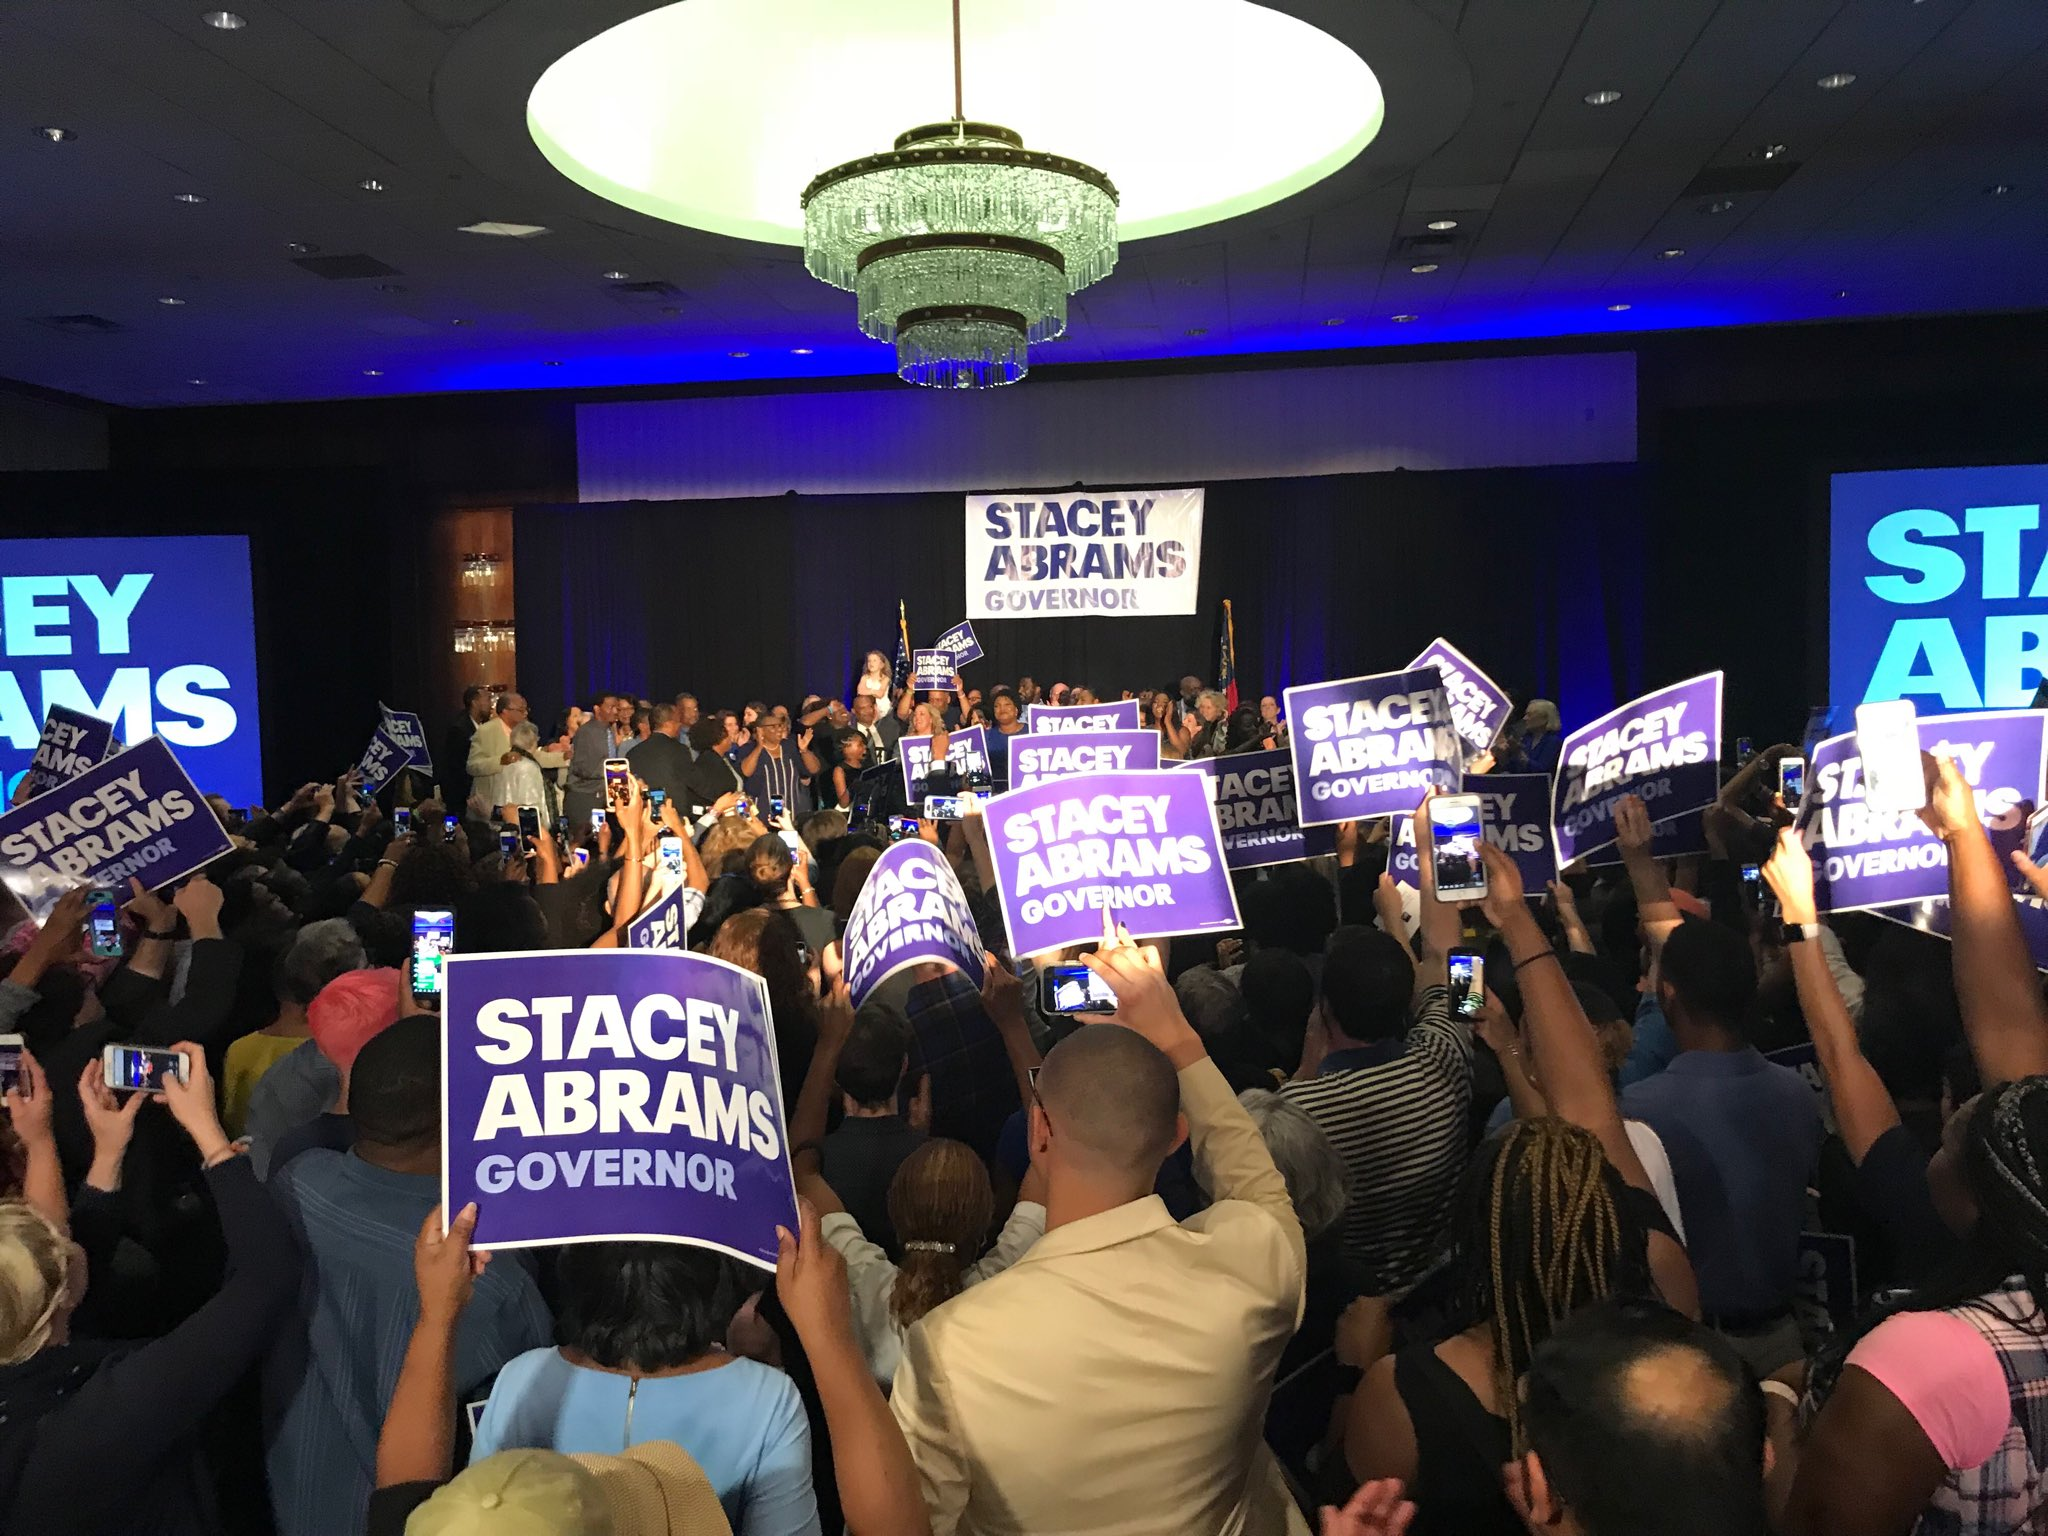 Candidate @staceyabrams on the stage https://t.co/D6SkyKhm3T